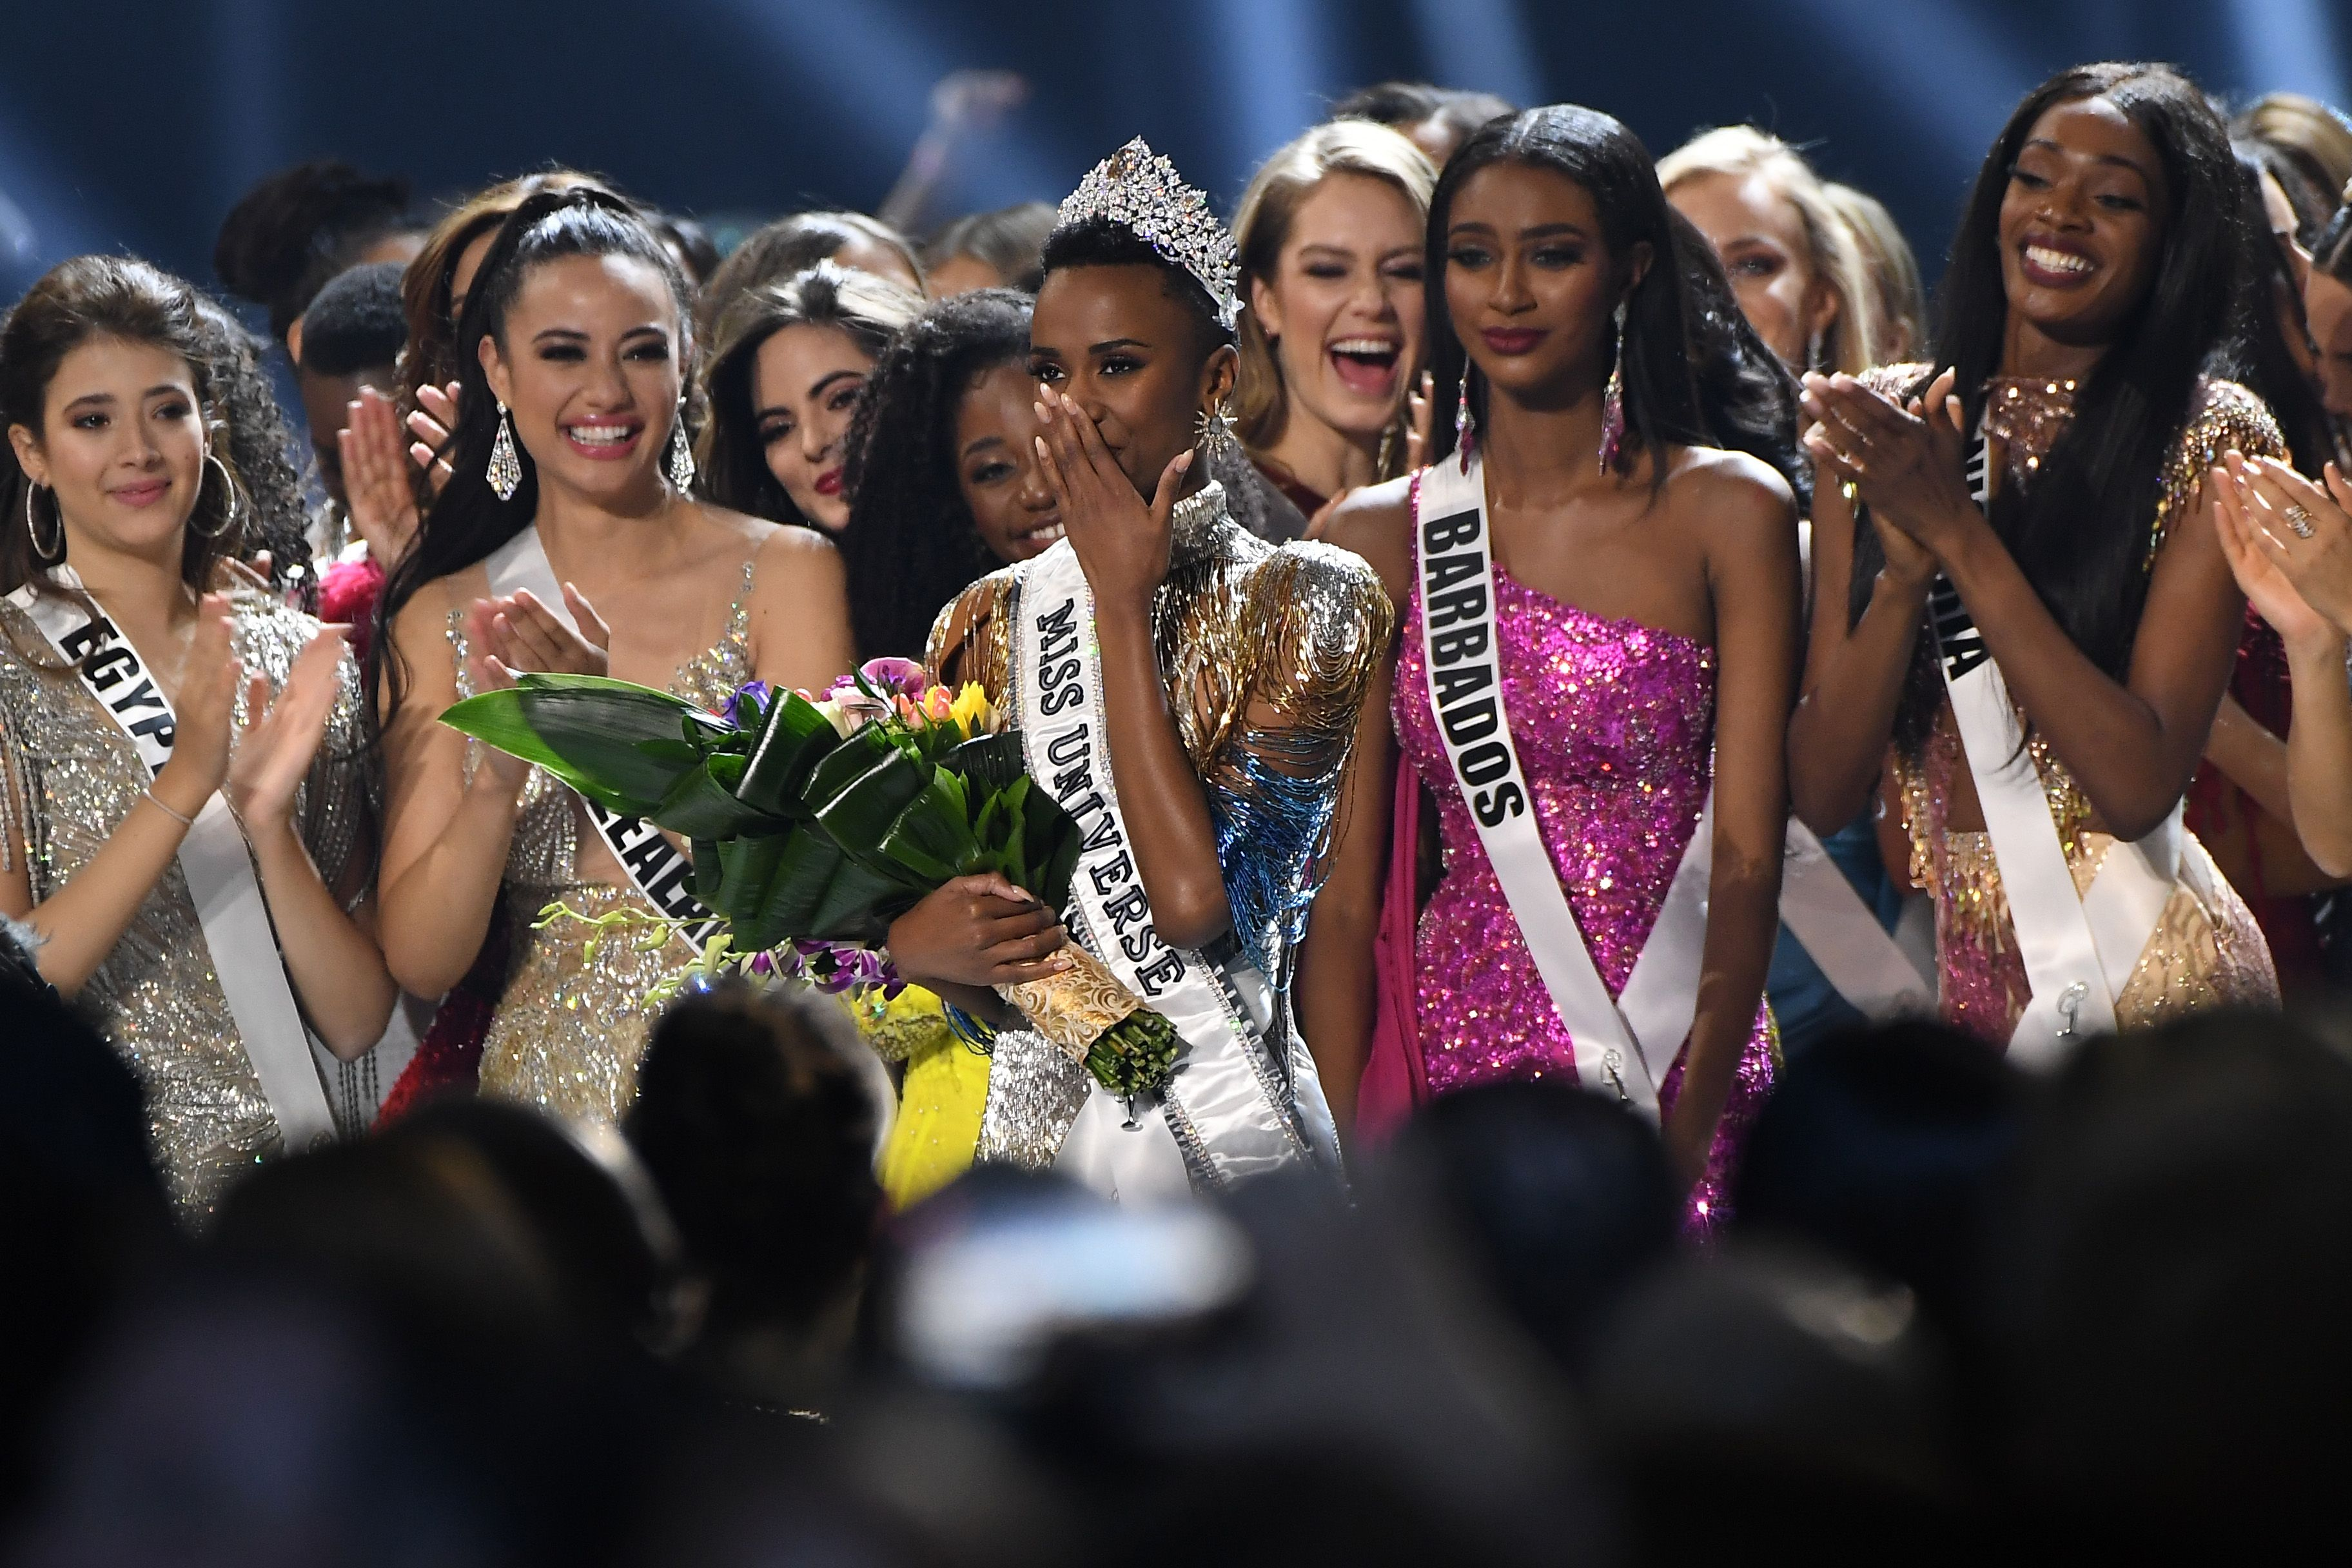 The 2019 Miss Universe Zozibini Tunzi of South Africa celebrating her victory | Source: Getty Images/GlobalImagesUkraine